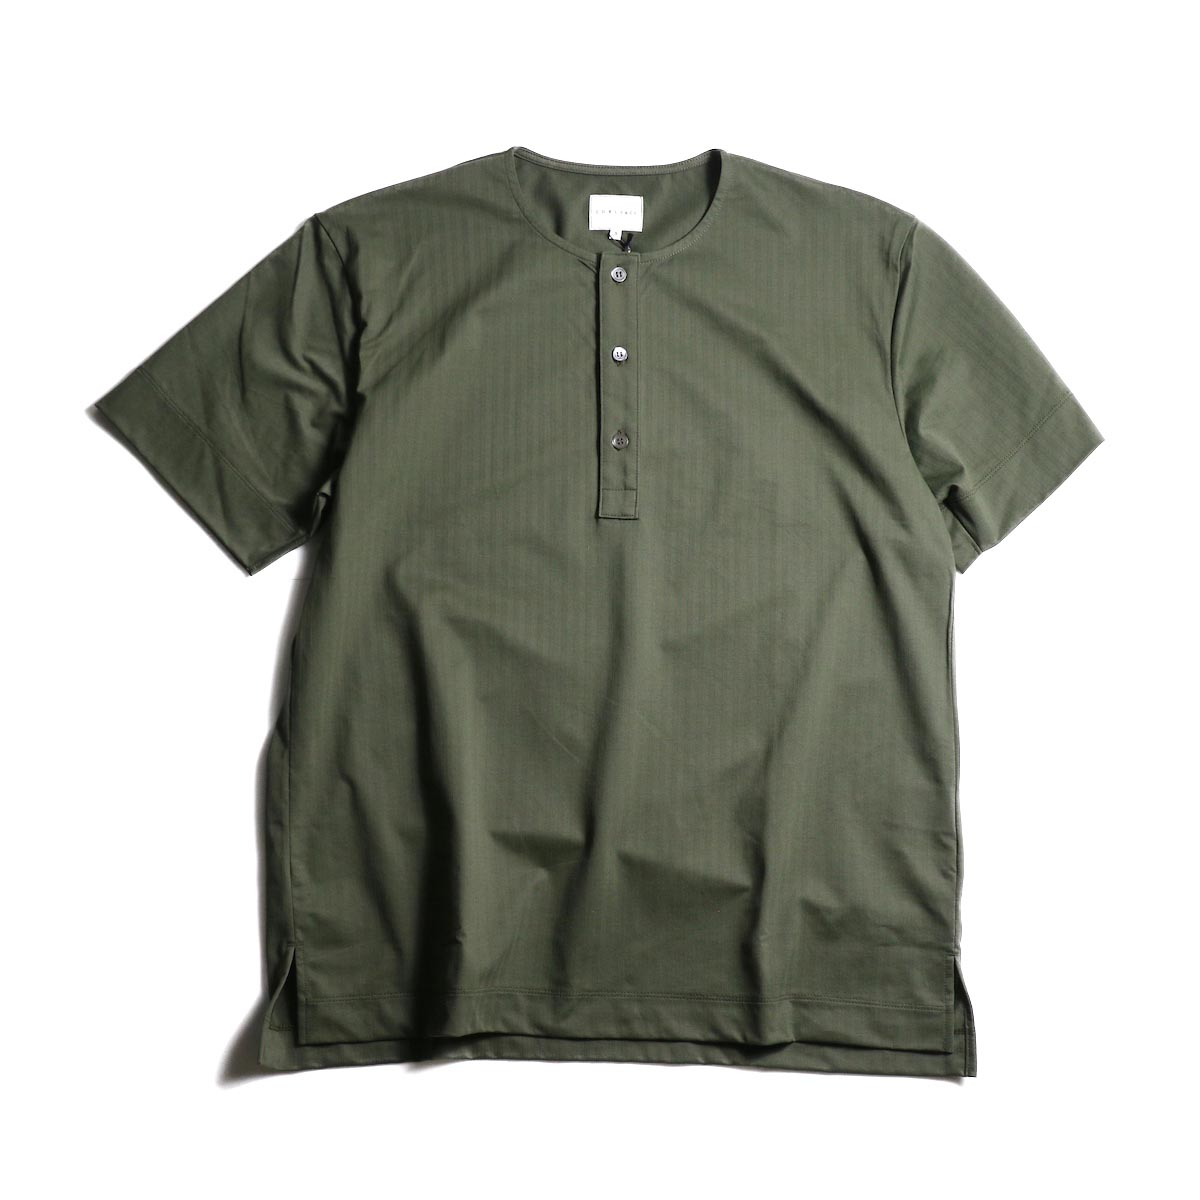 CURLY / SALFORD 3B SS HENLEY (Olive HB)正面